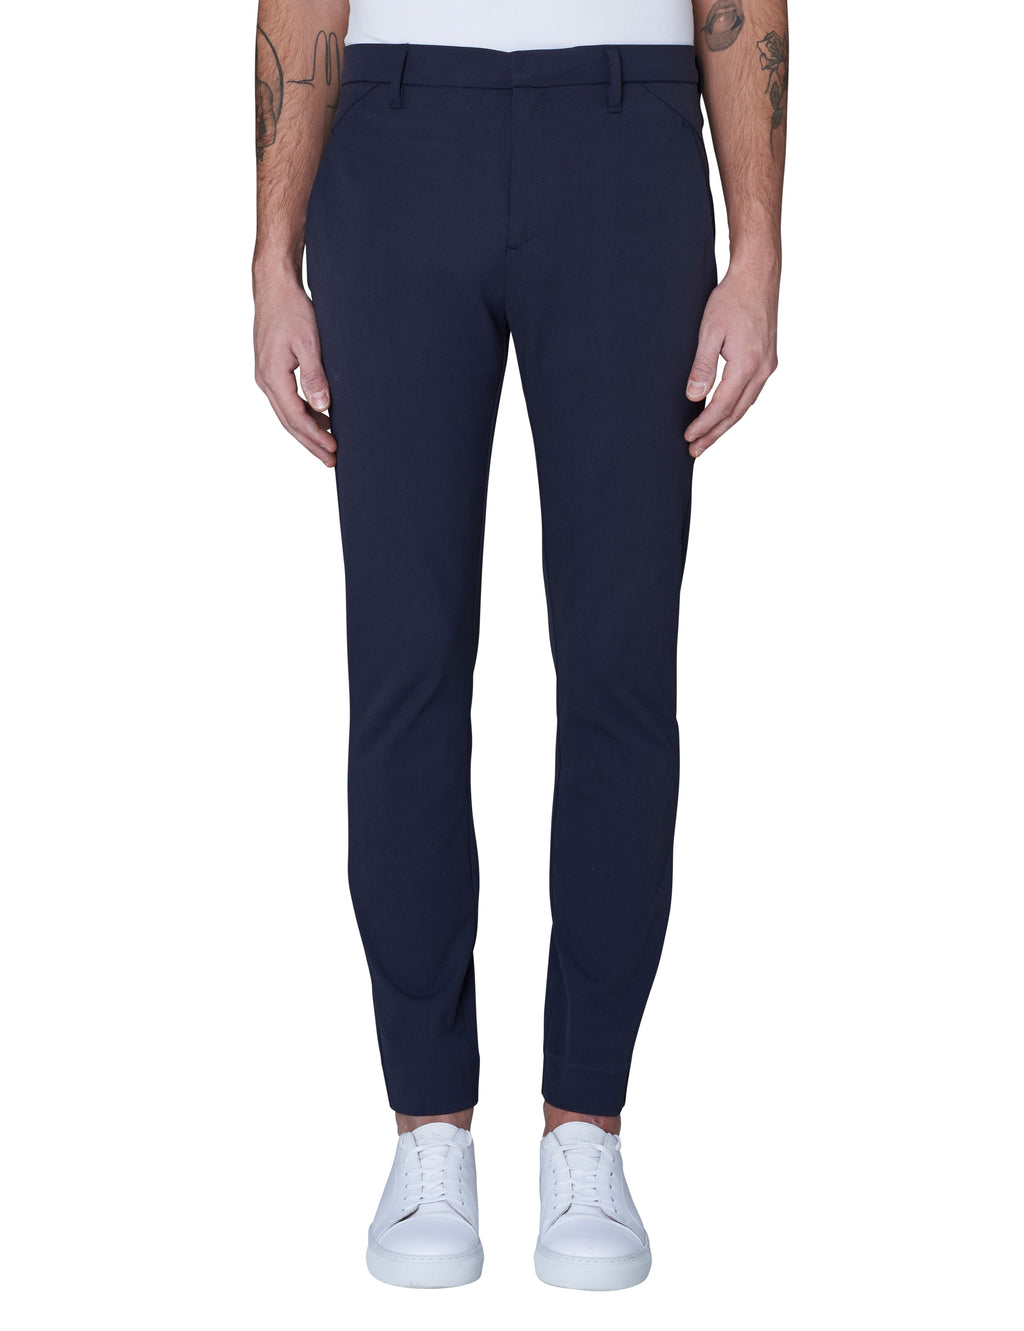 Plain josh deep navy